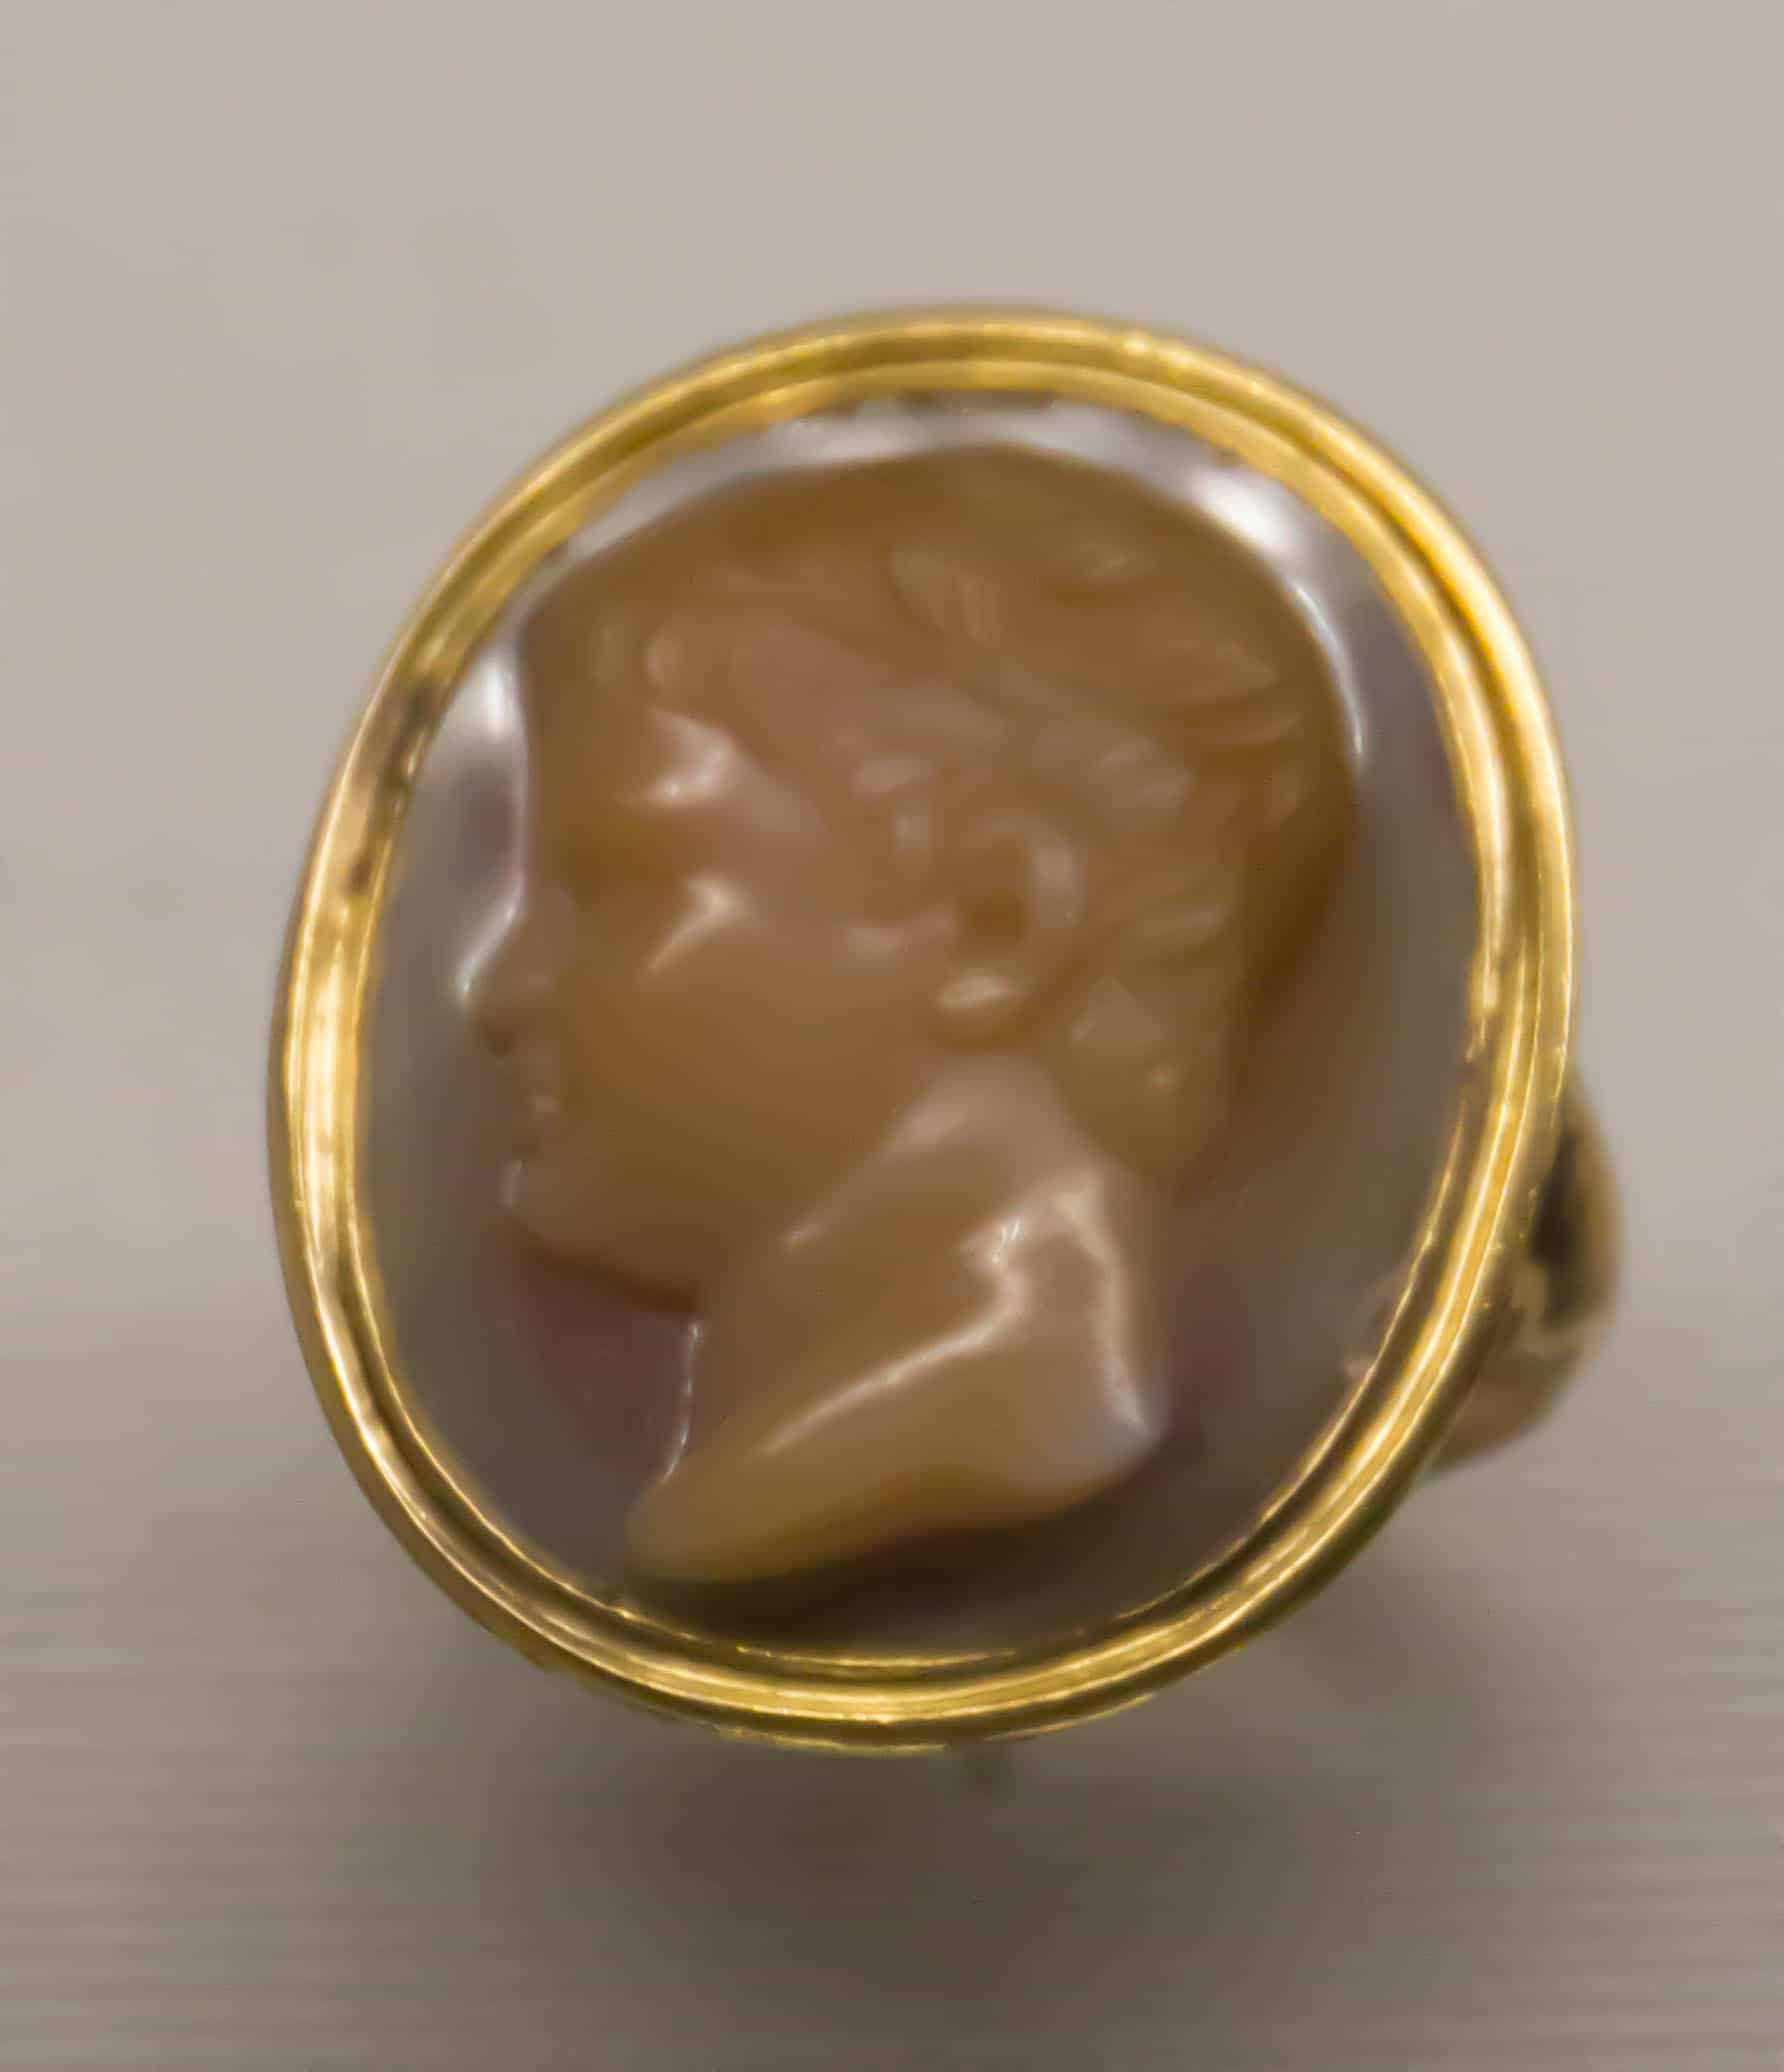 Gold Gilded Brass Agate Cameo Italy Late 18th Century.jpg